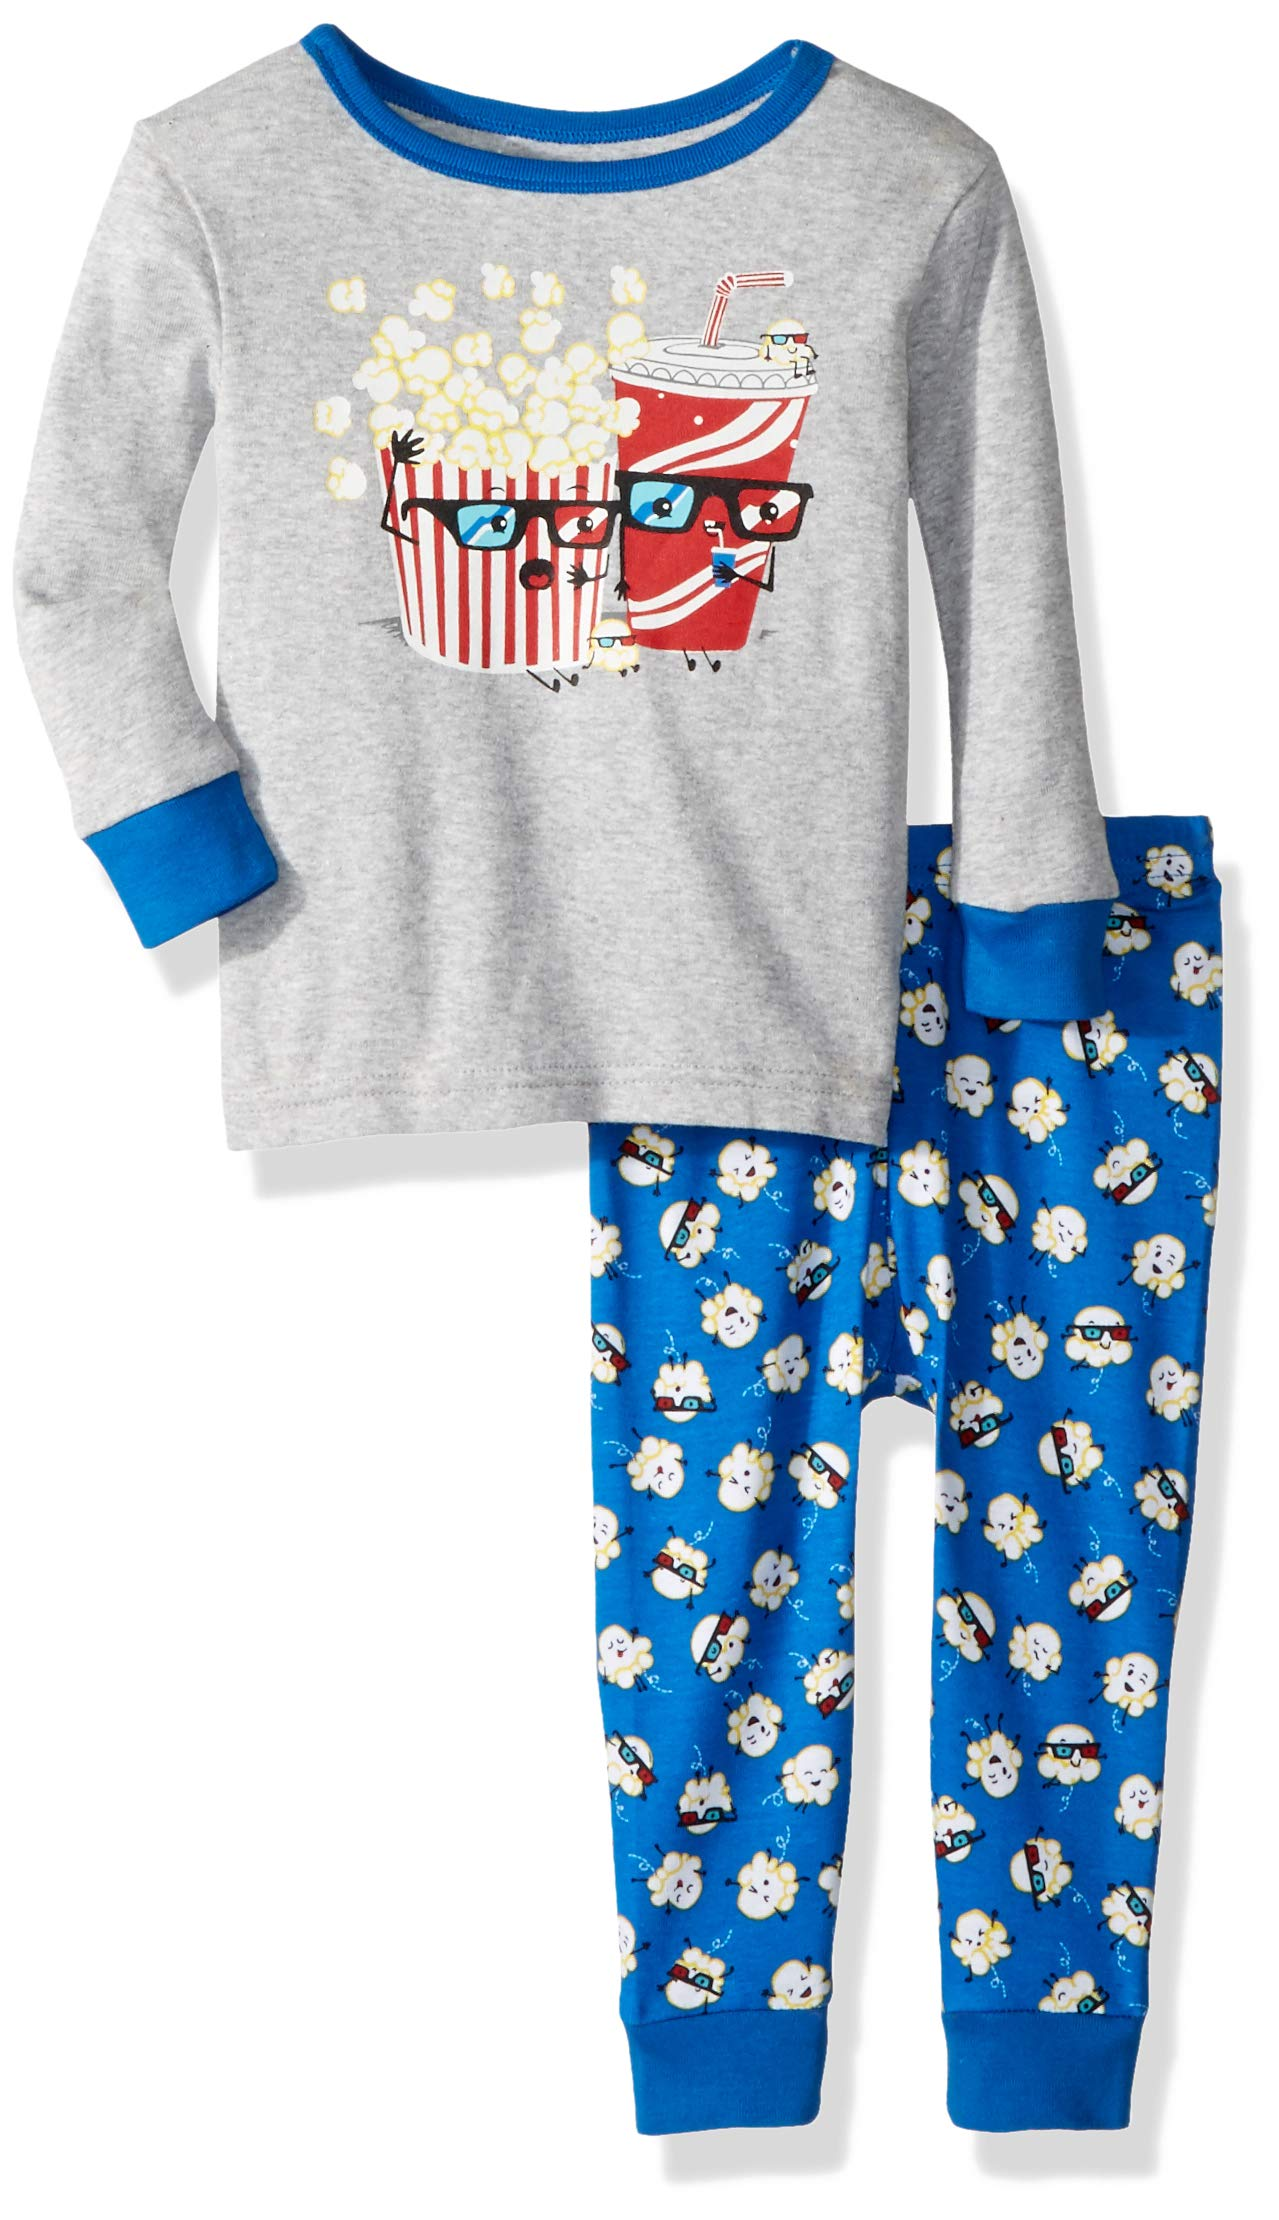 Boy Lamaze Organic Baby Organic Baby//Toddler Girl Unisex Tight Fit Pajamas Set